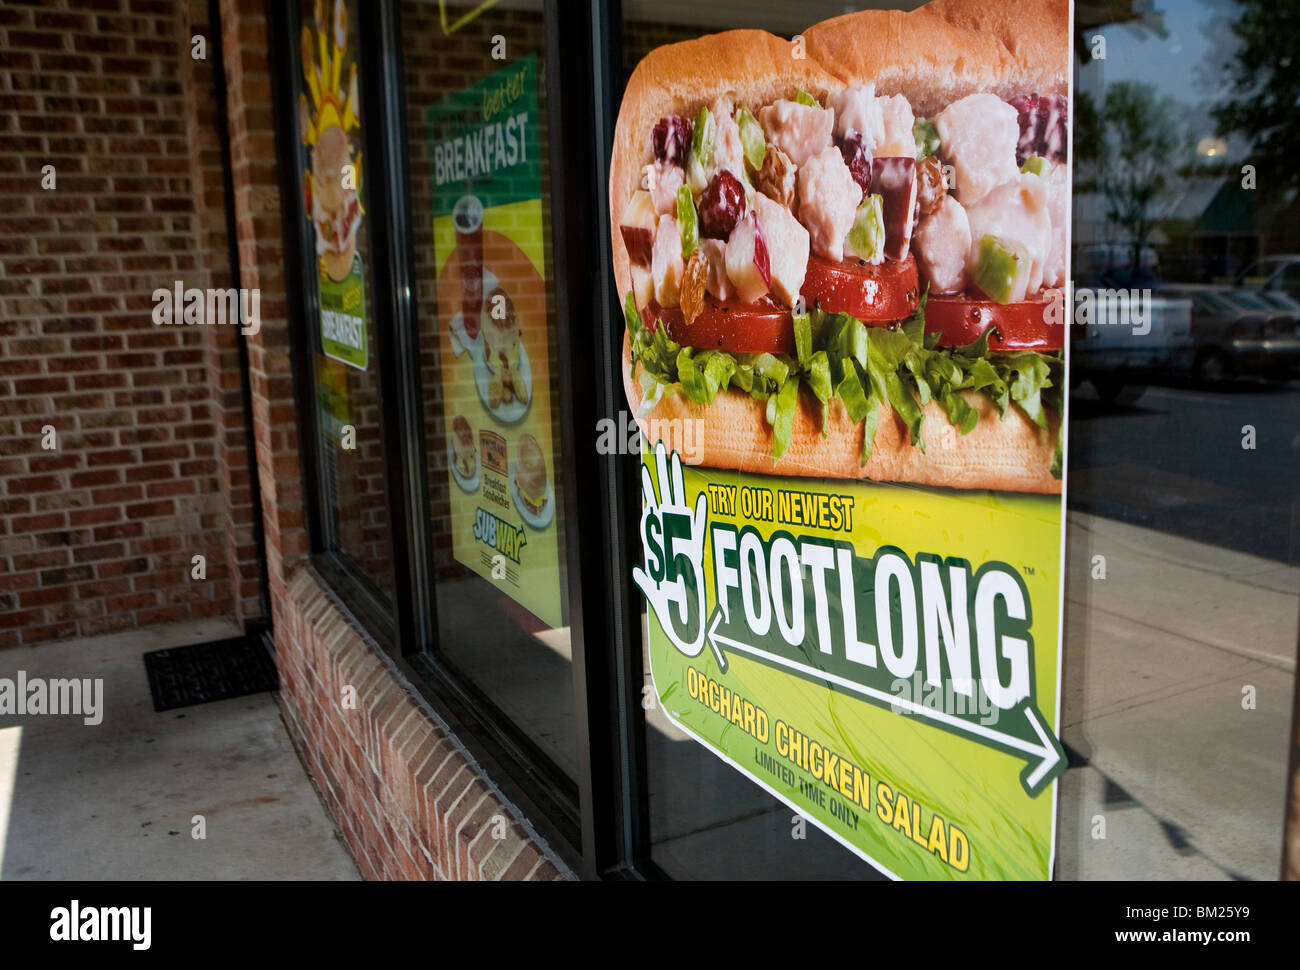 A Subway '$5 Footlong' sign.  - Stock Image